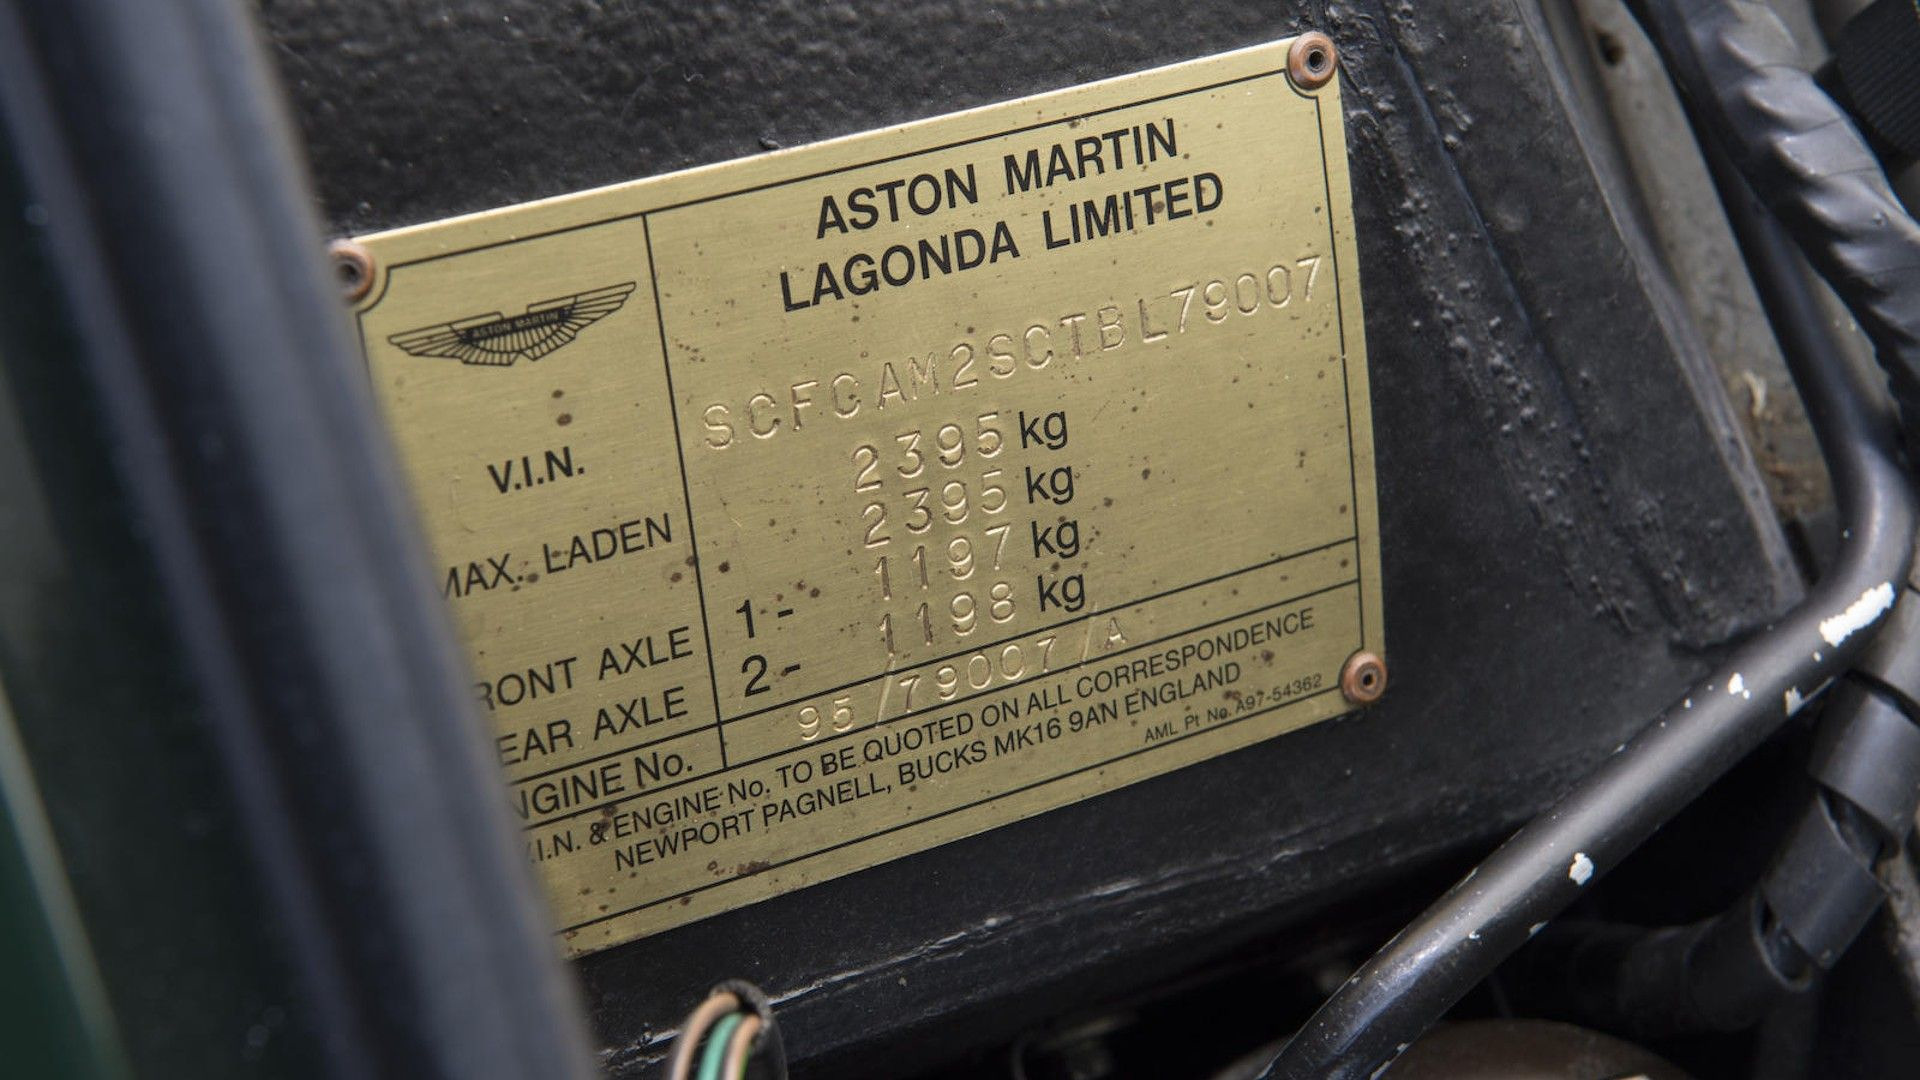 1996-aston-martin-v8-sportsman-estate (24)